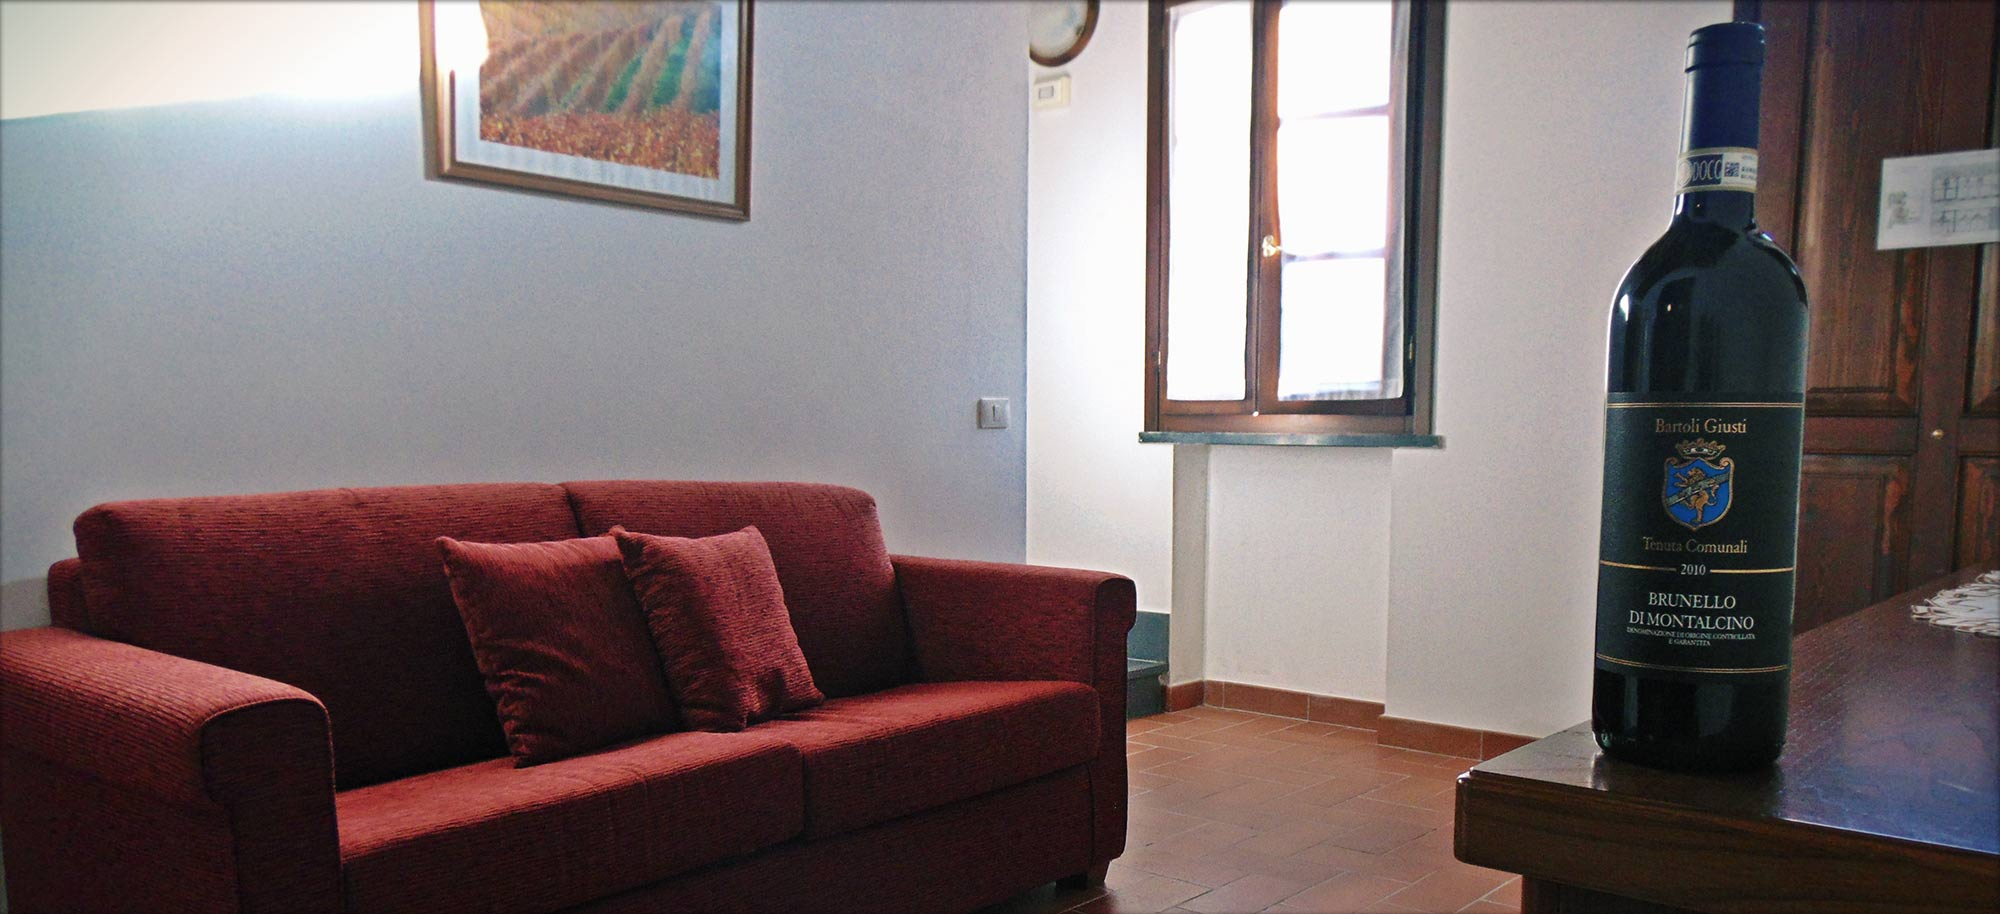 Corte Tommasi - Holiday apartments in Tuscany - Holiday apartments with pool in Tuscany